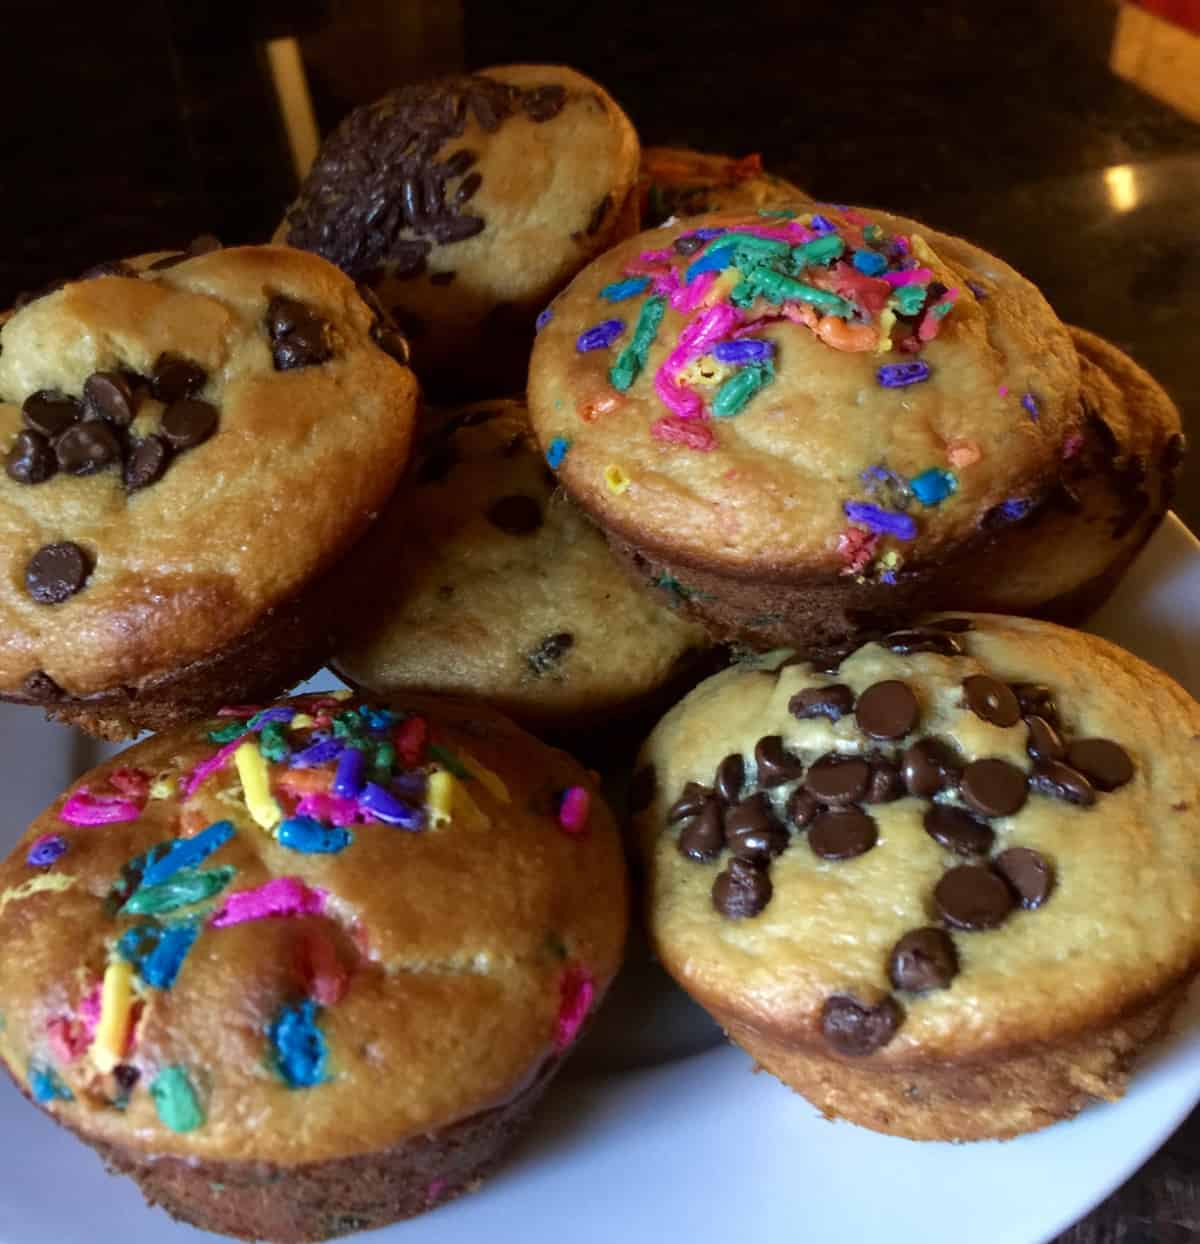 Fresh muffins topped with chocolate chips and colored sprinkles